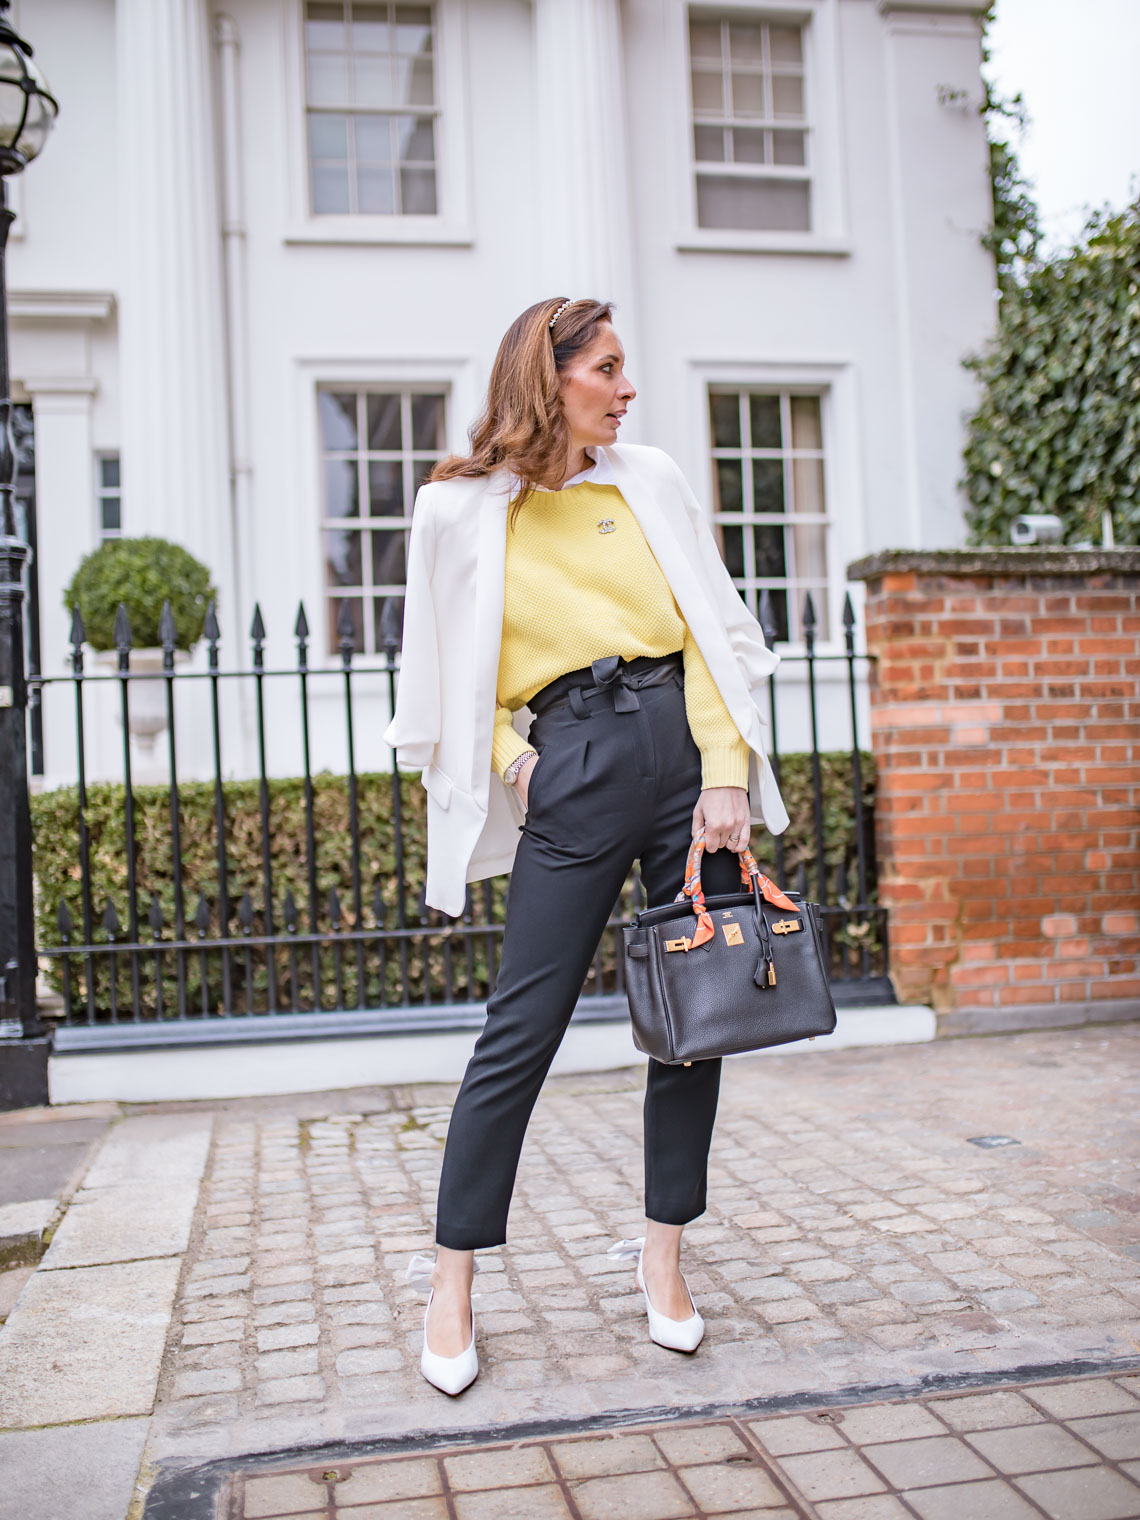 How to wear yellow sweater for work Hermes Birkin Chanel brooch